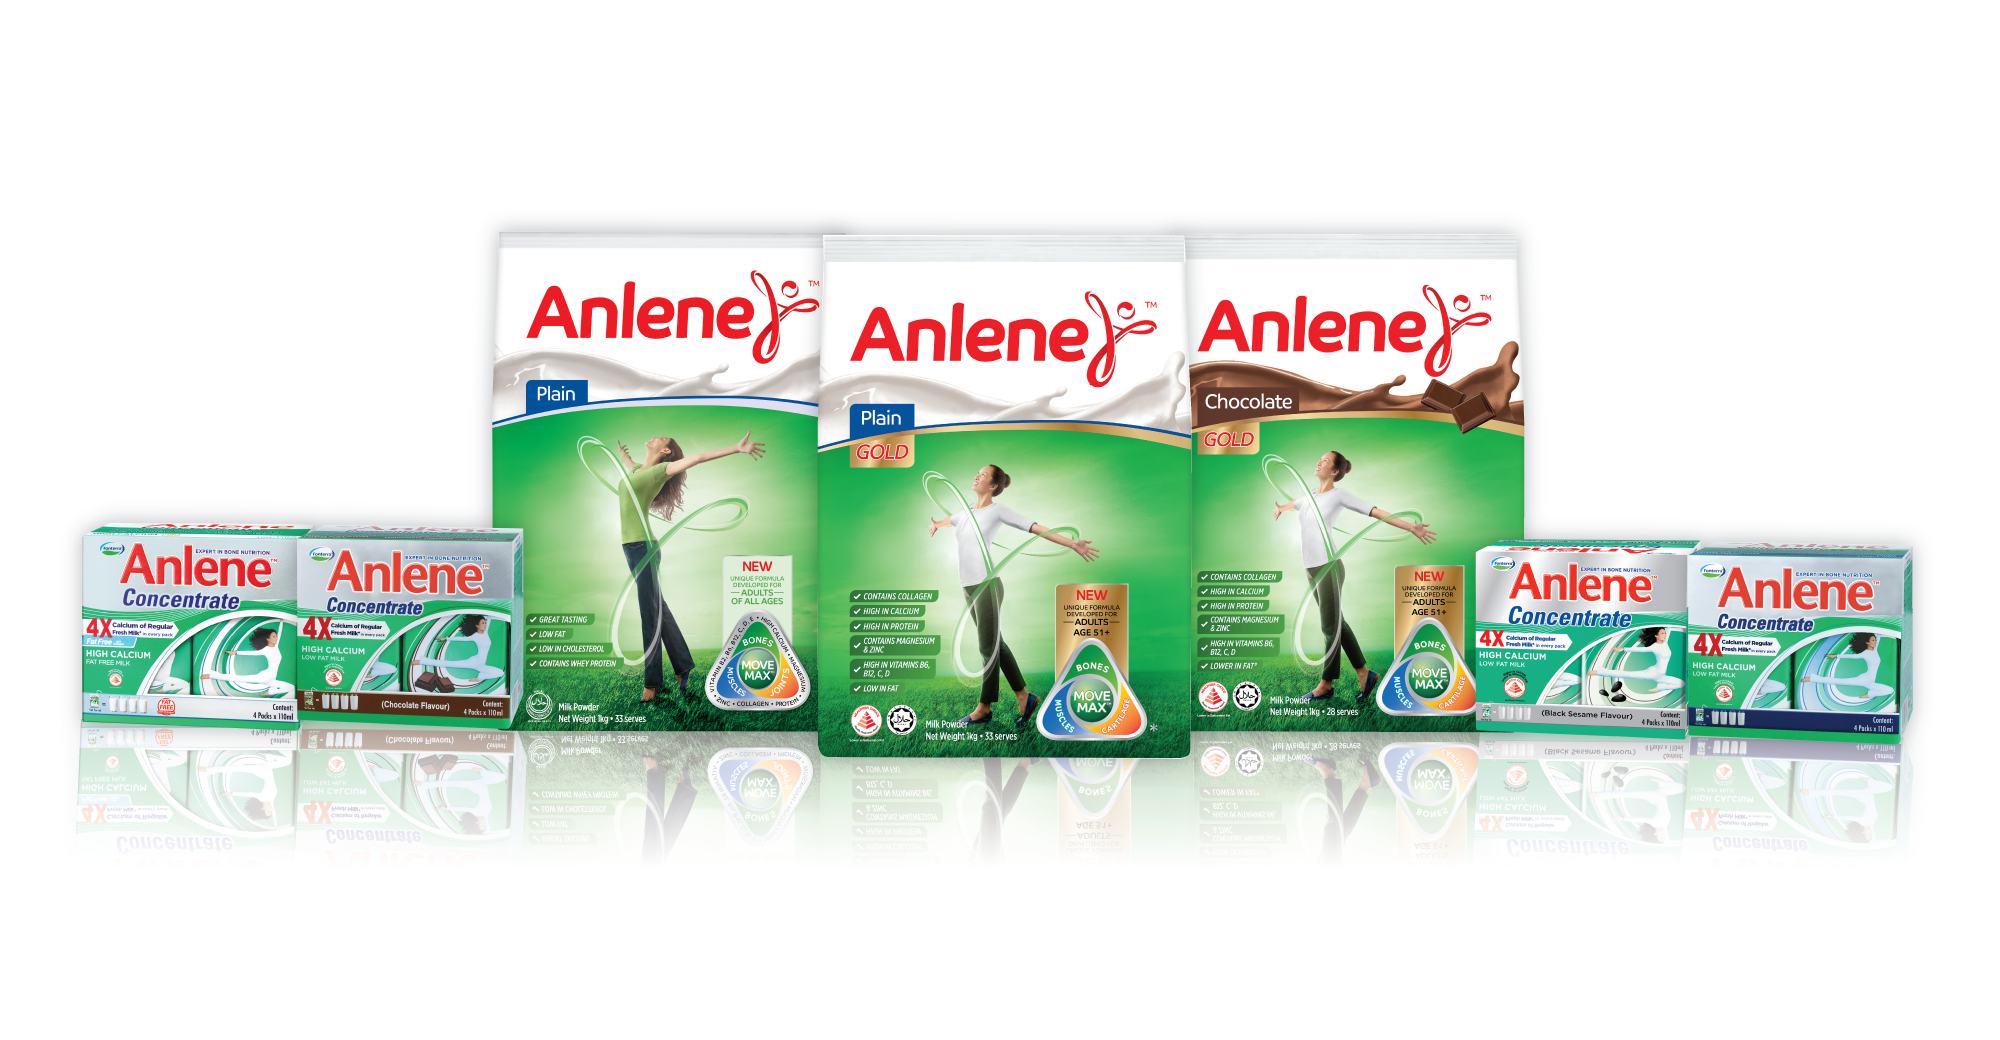 Anlene-Product-Shot-2015